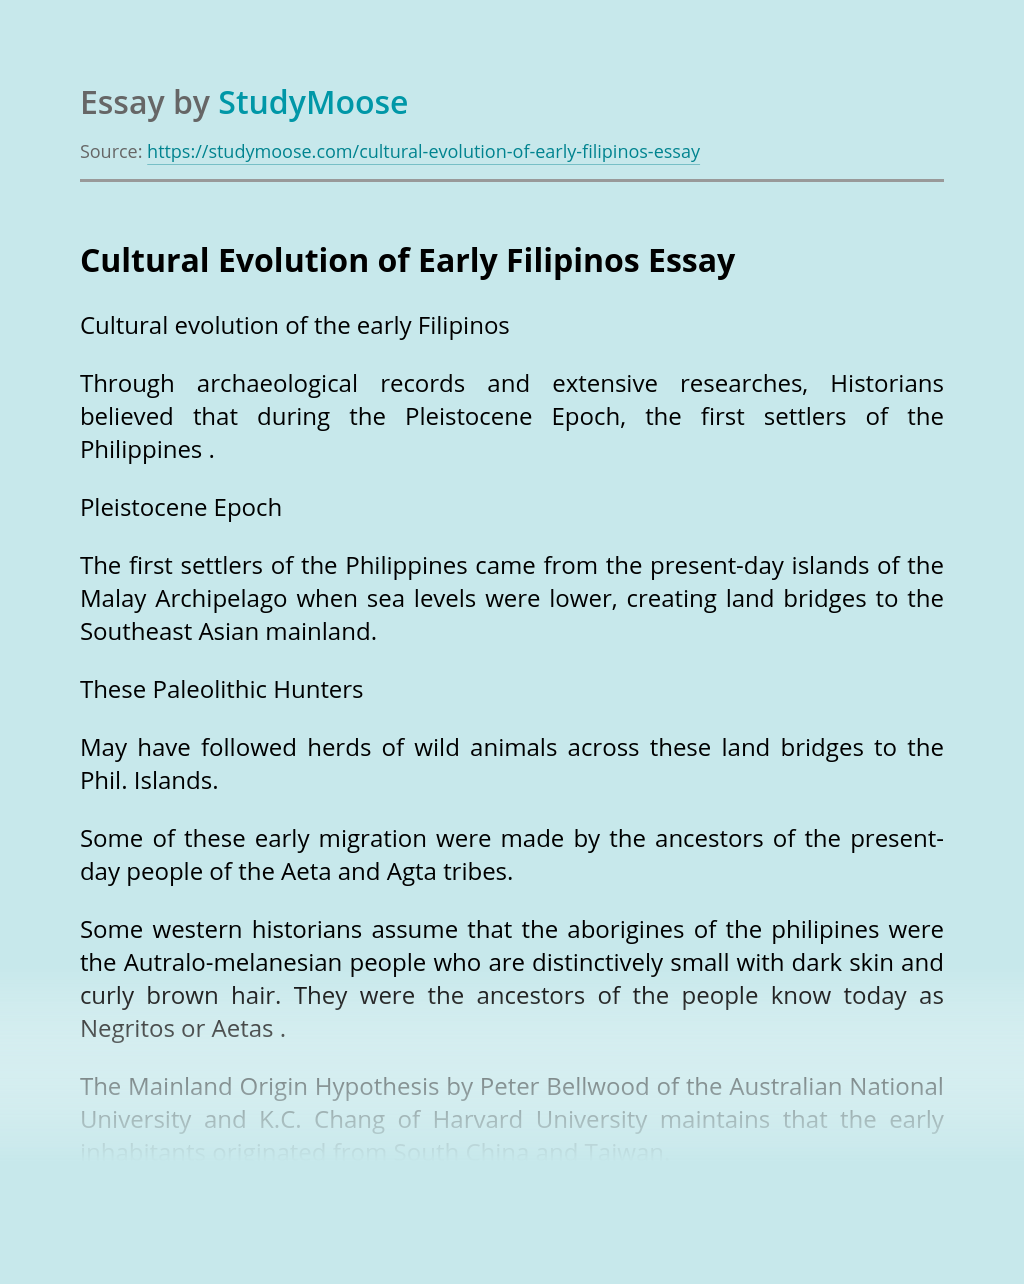 Cultural Evolution of Early Filipinos